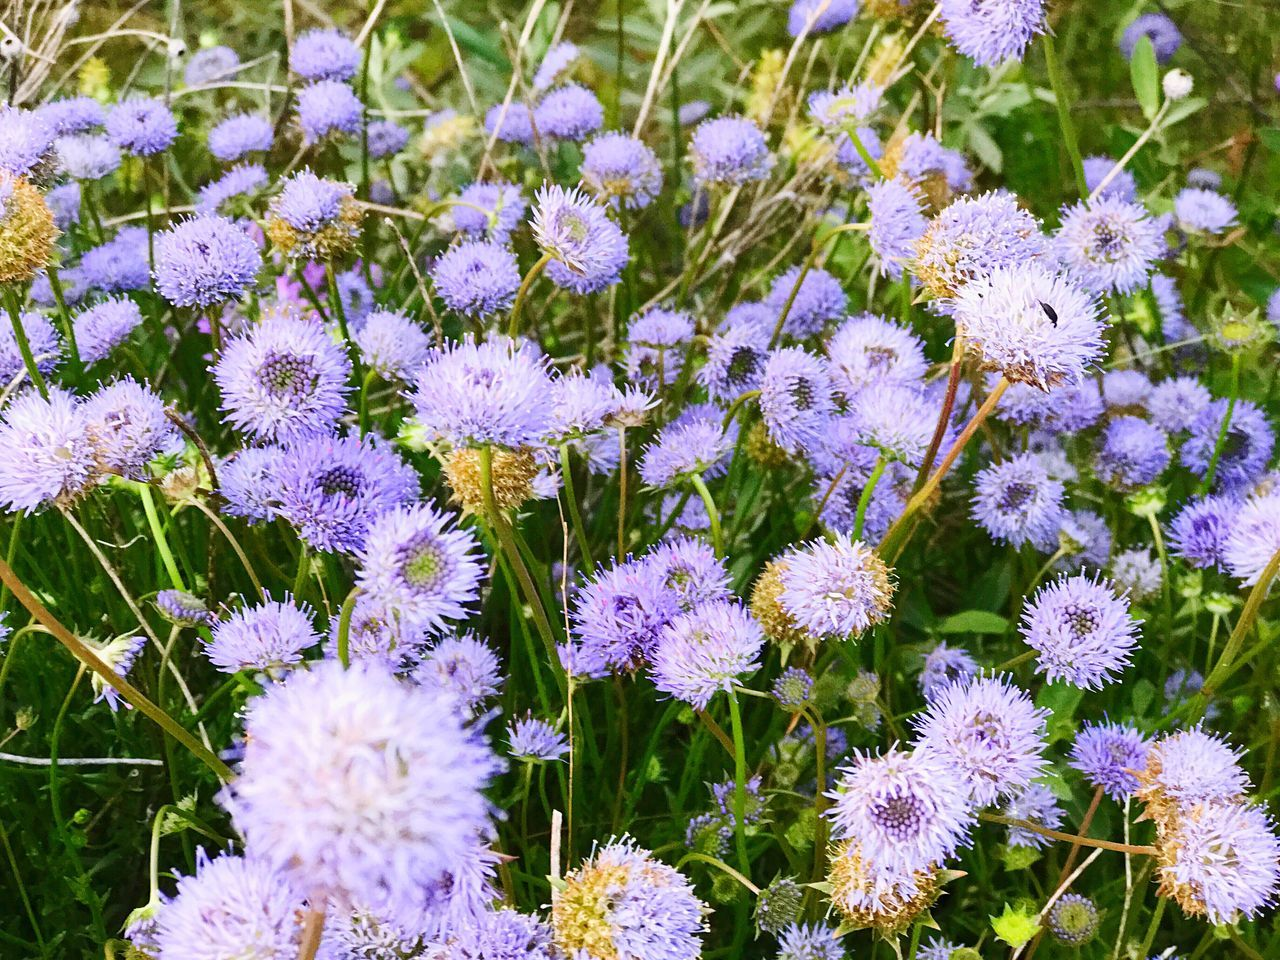 Flower Fragility Purple Nature Beauty In Nature Plant Growth Flower Head No People Petal Day Outdoors Freshness Full Frame Green Color Close-up Blooming Springtime Spring Abundance Of Flowers Wild Flowers Environment Blue Flowers Nature Backgrounds